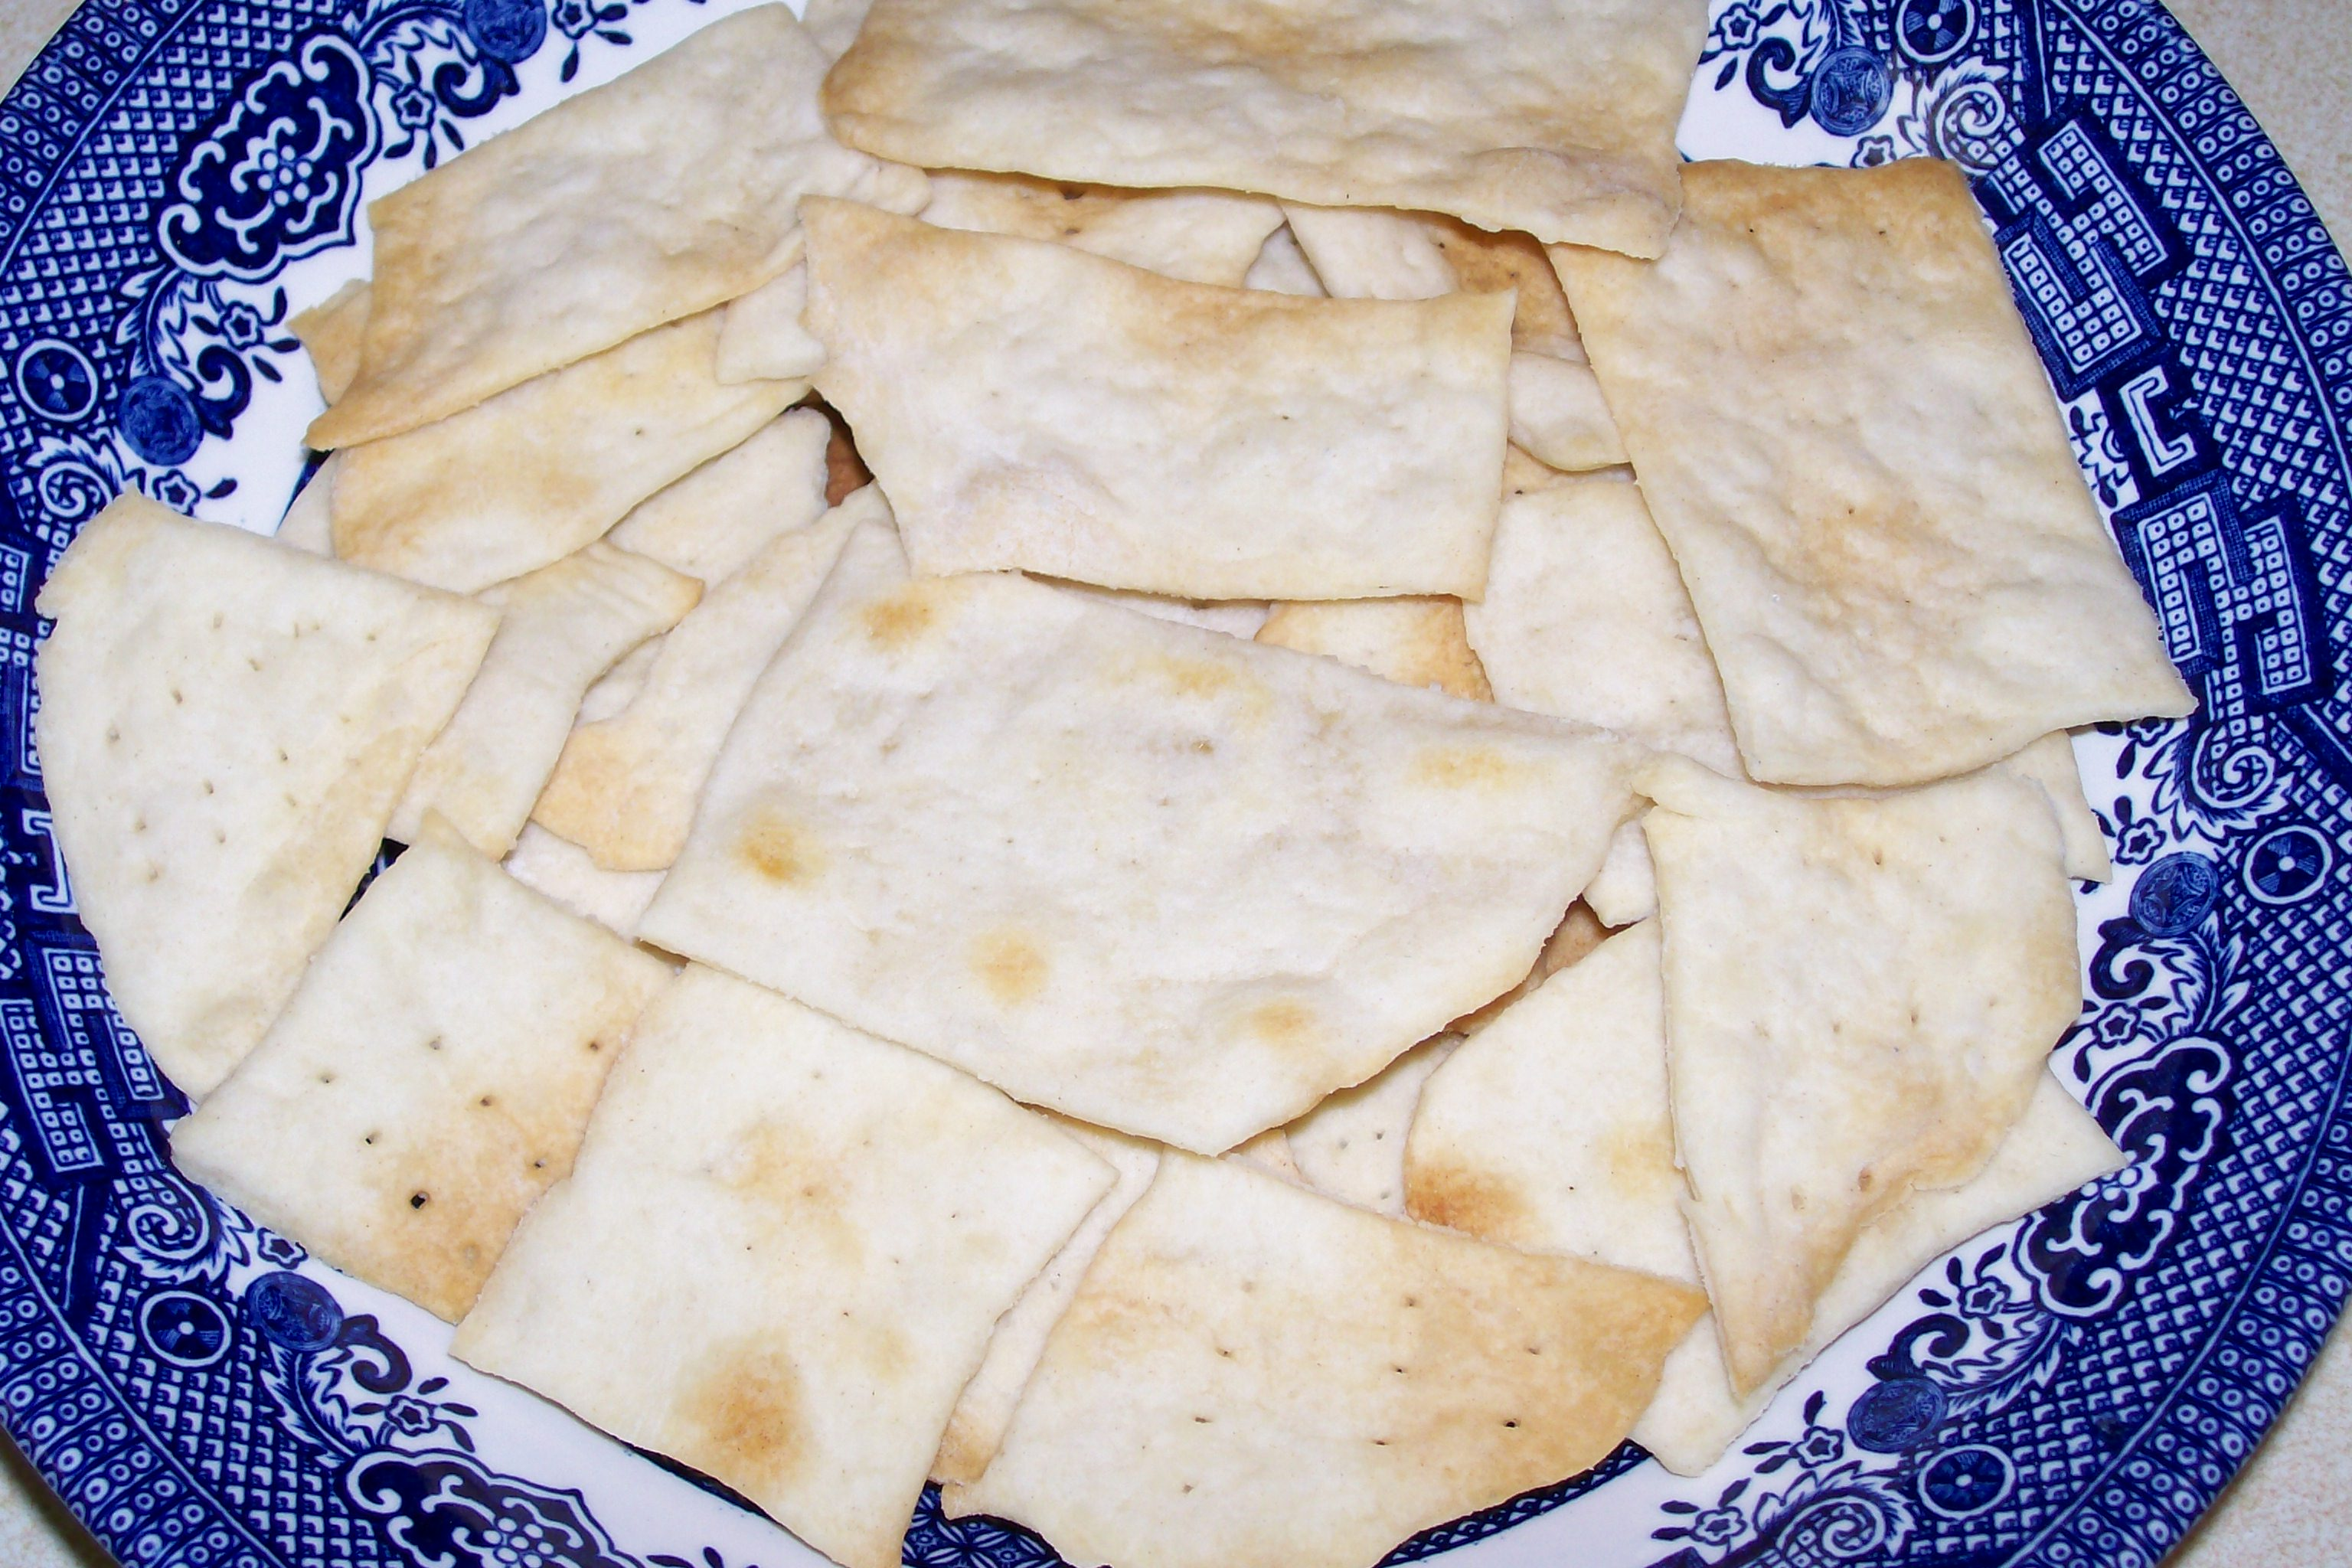 Easy Bake Water Crackers